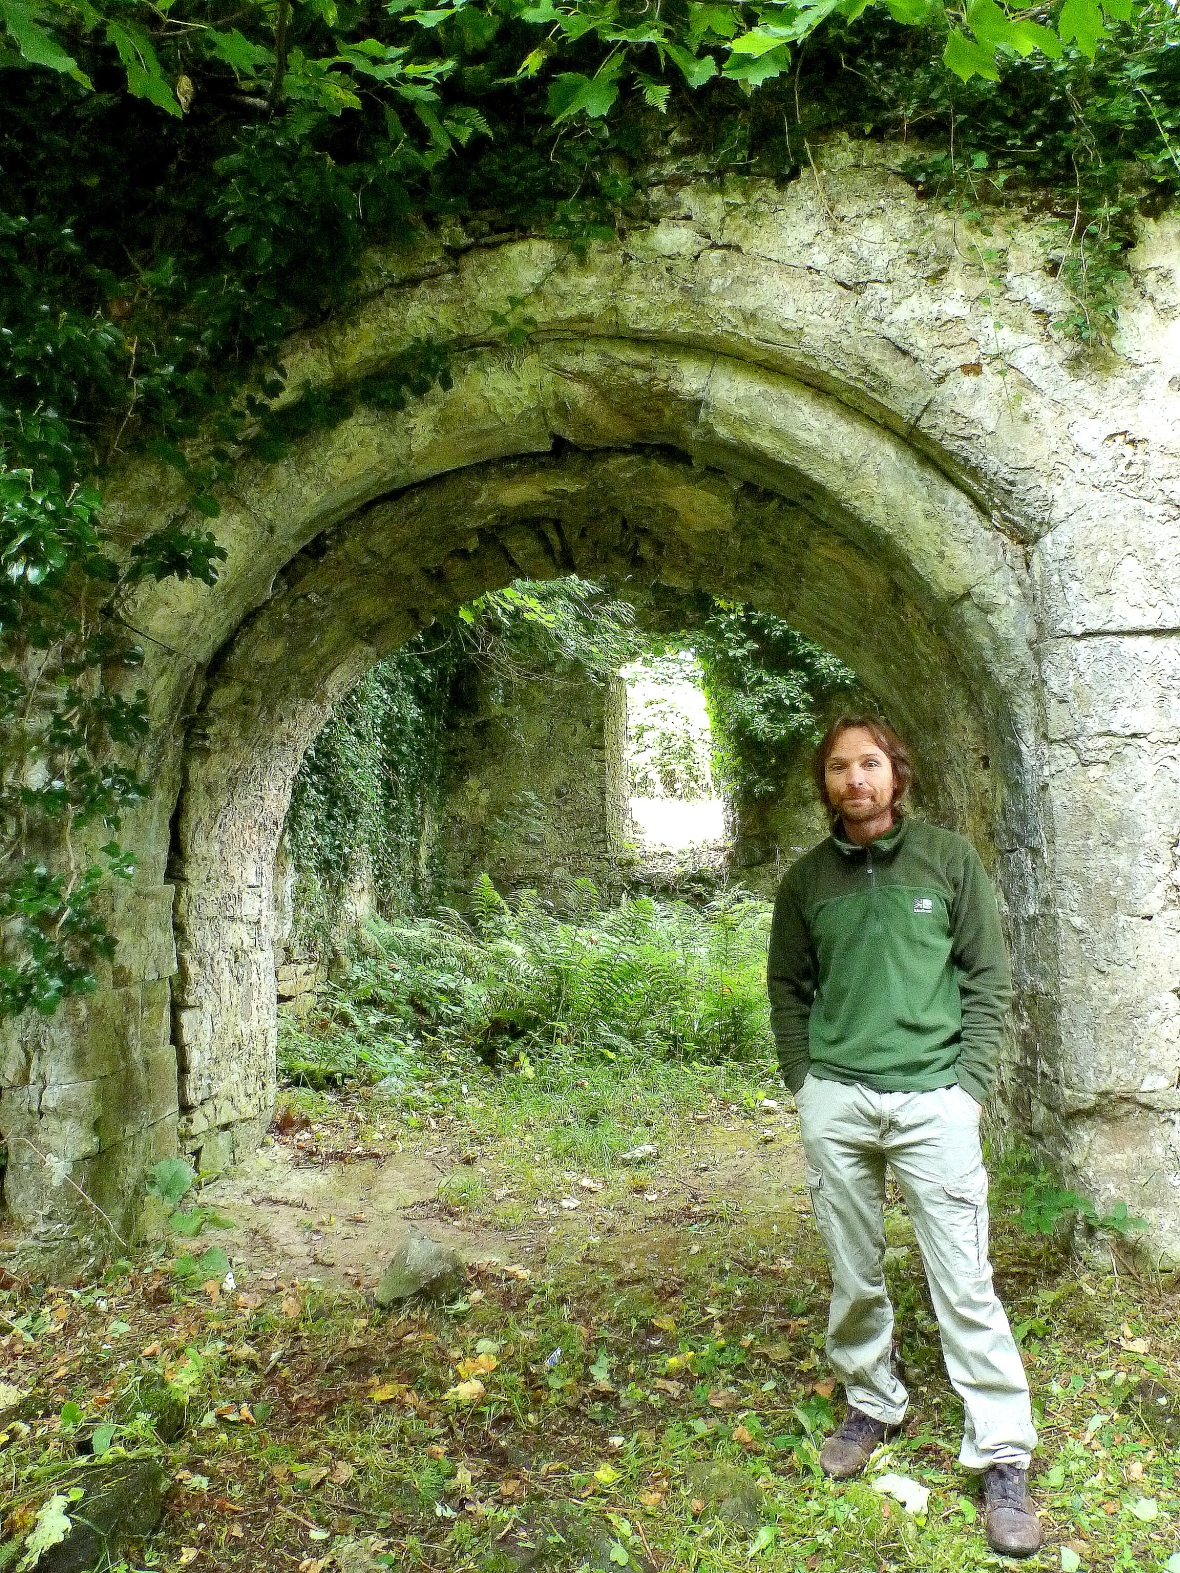 Heritage Officer Hugh Boyle, at the entrance to the transcept